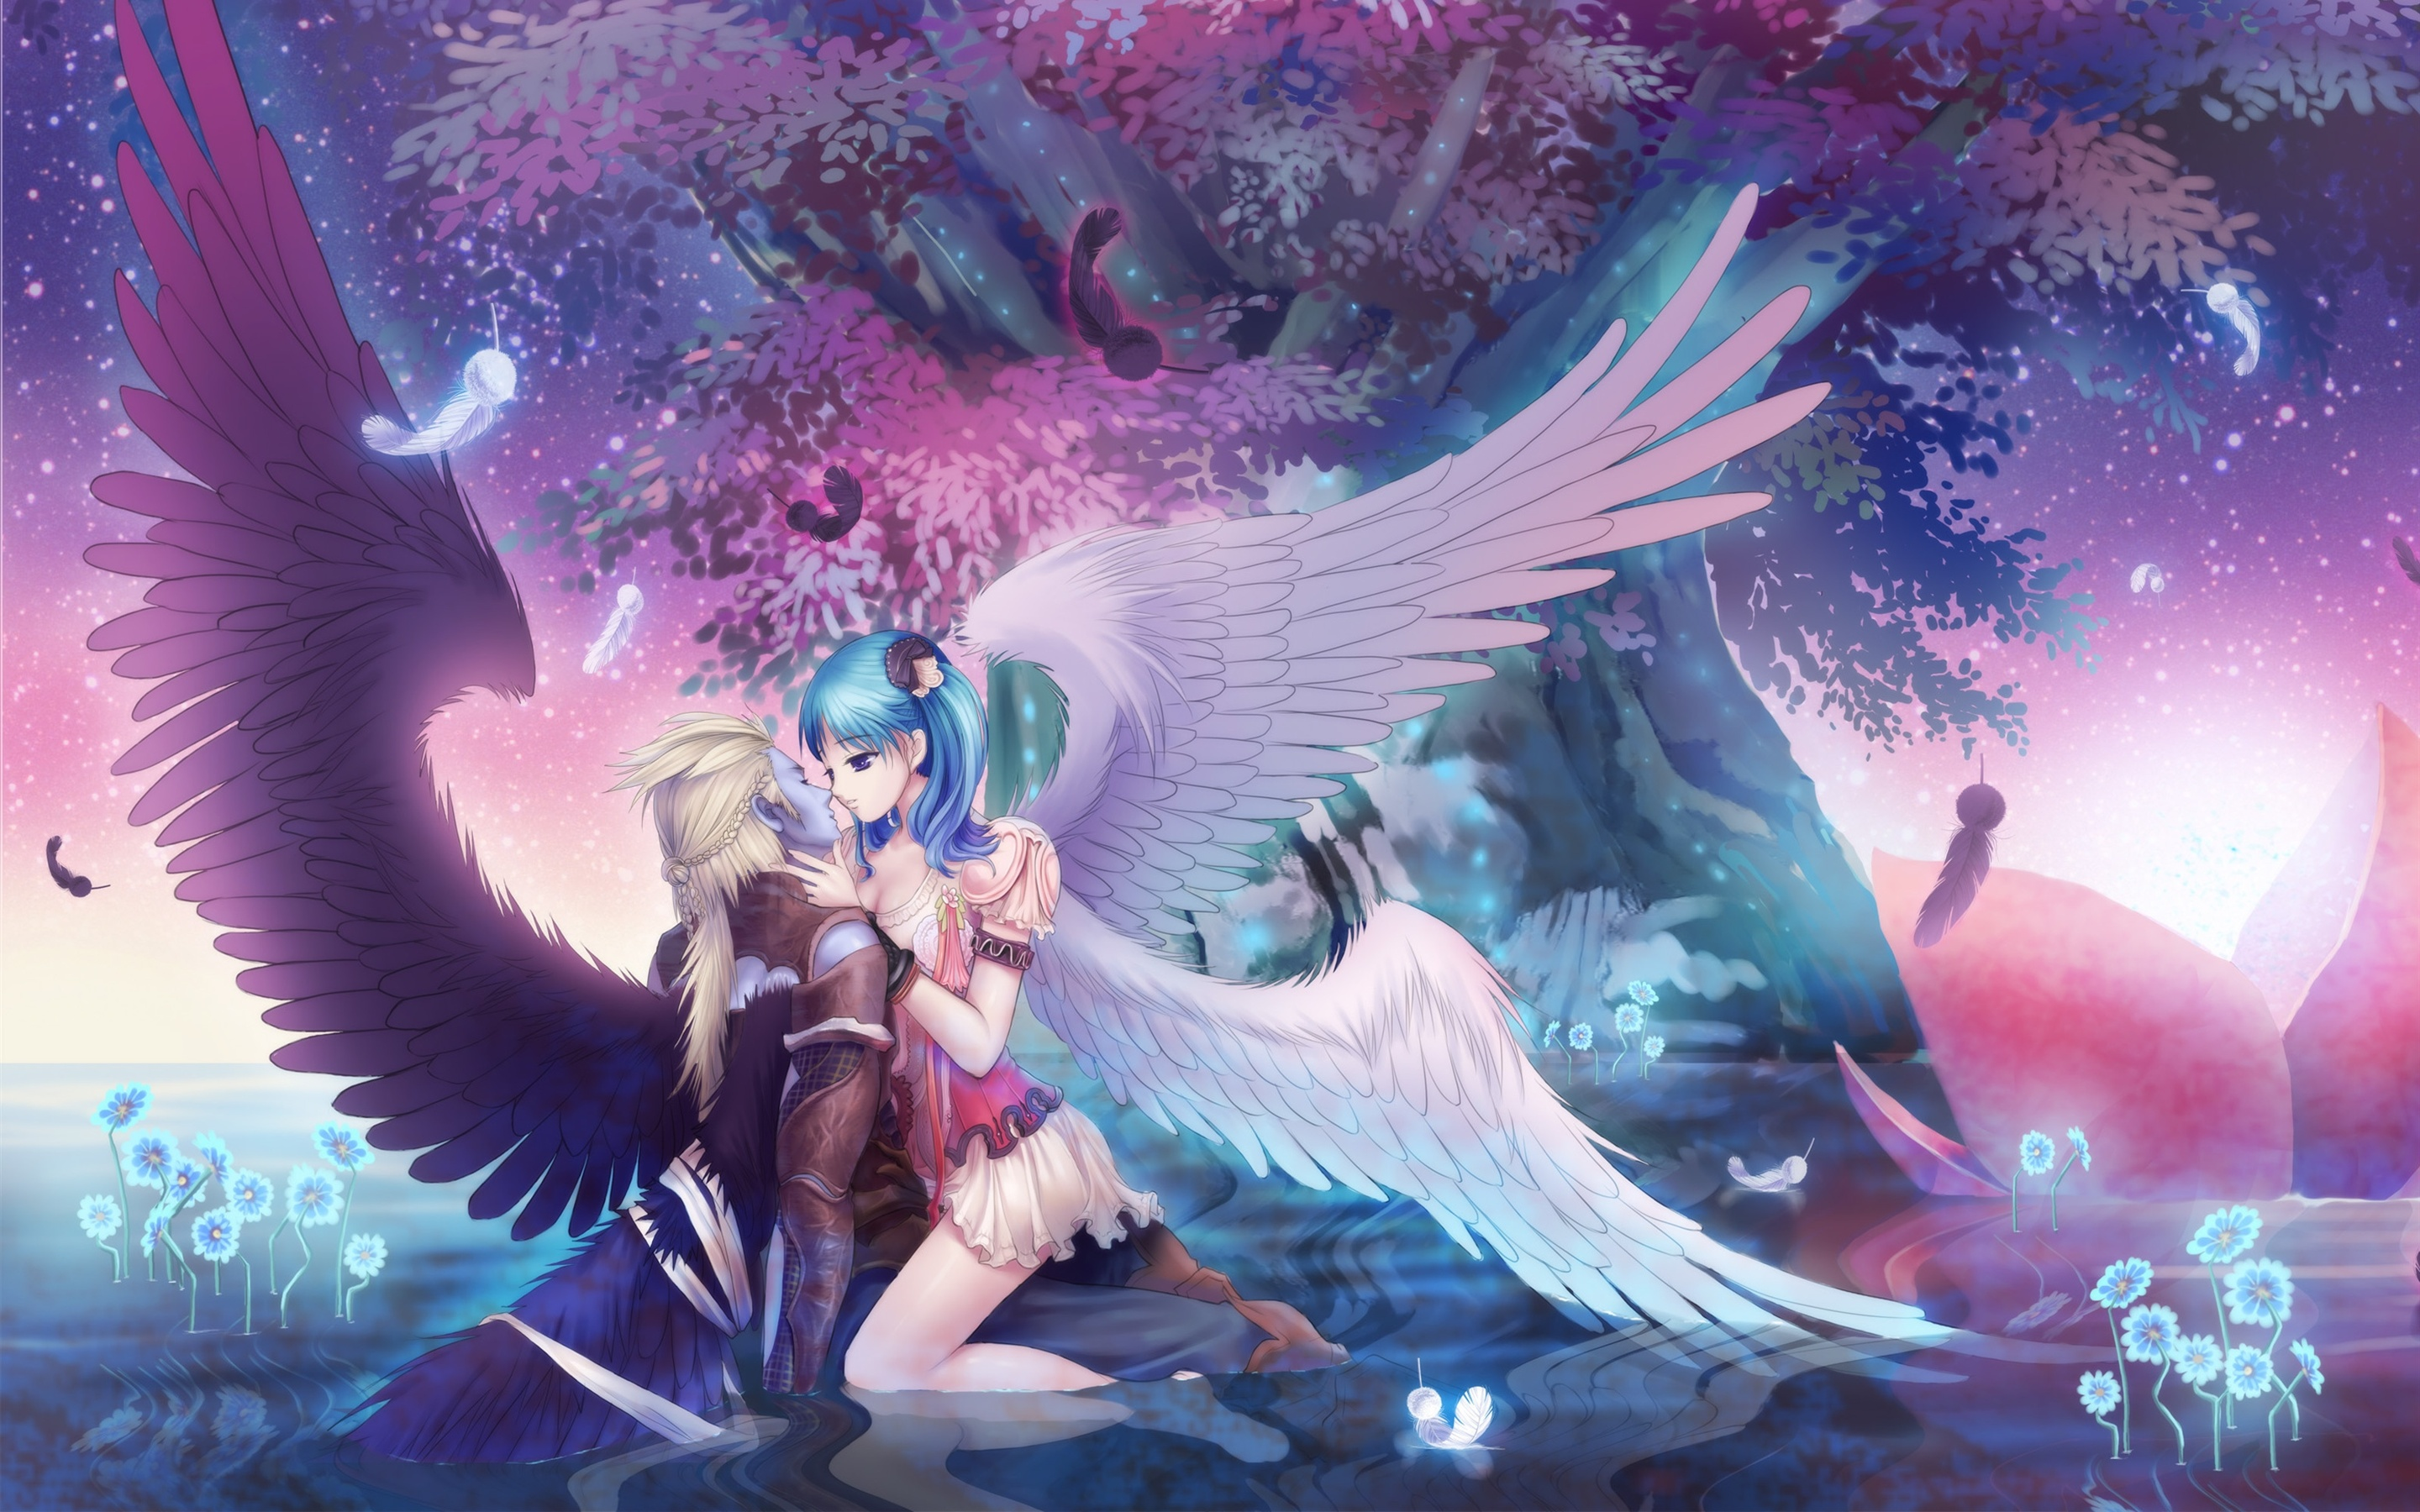 Wallpaper Angel Girl Kiss Boy Wings Trees Beautiful Anime Picture 2880x1800 Hd Picture Image